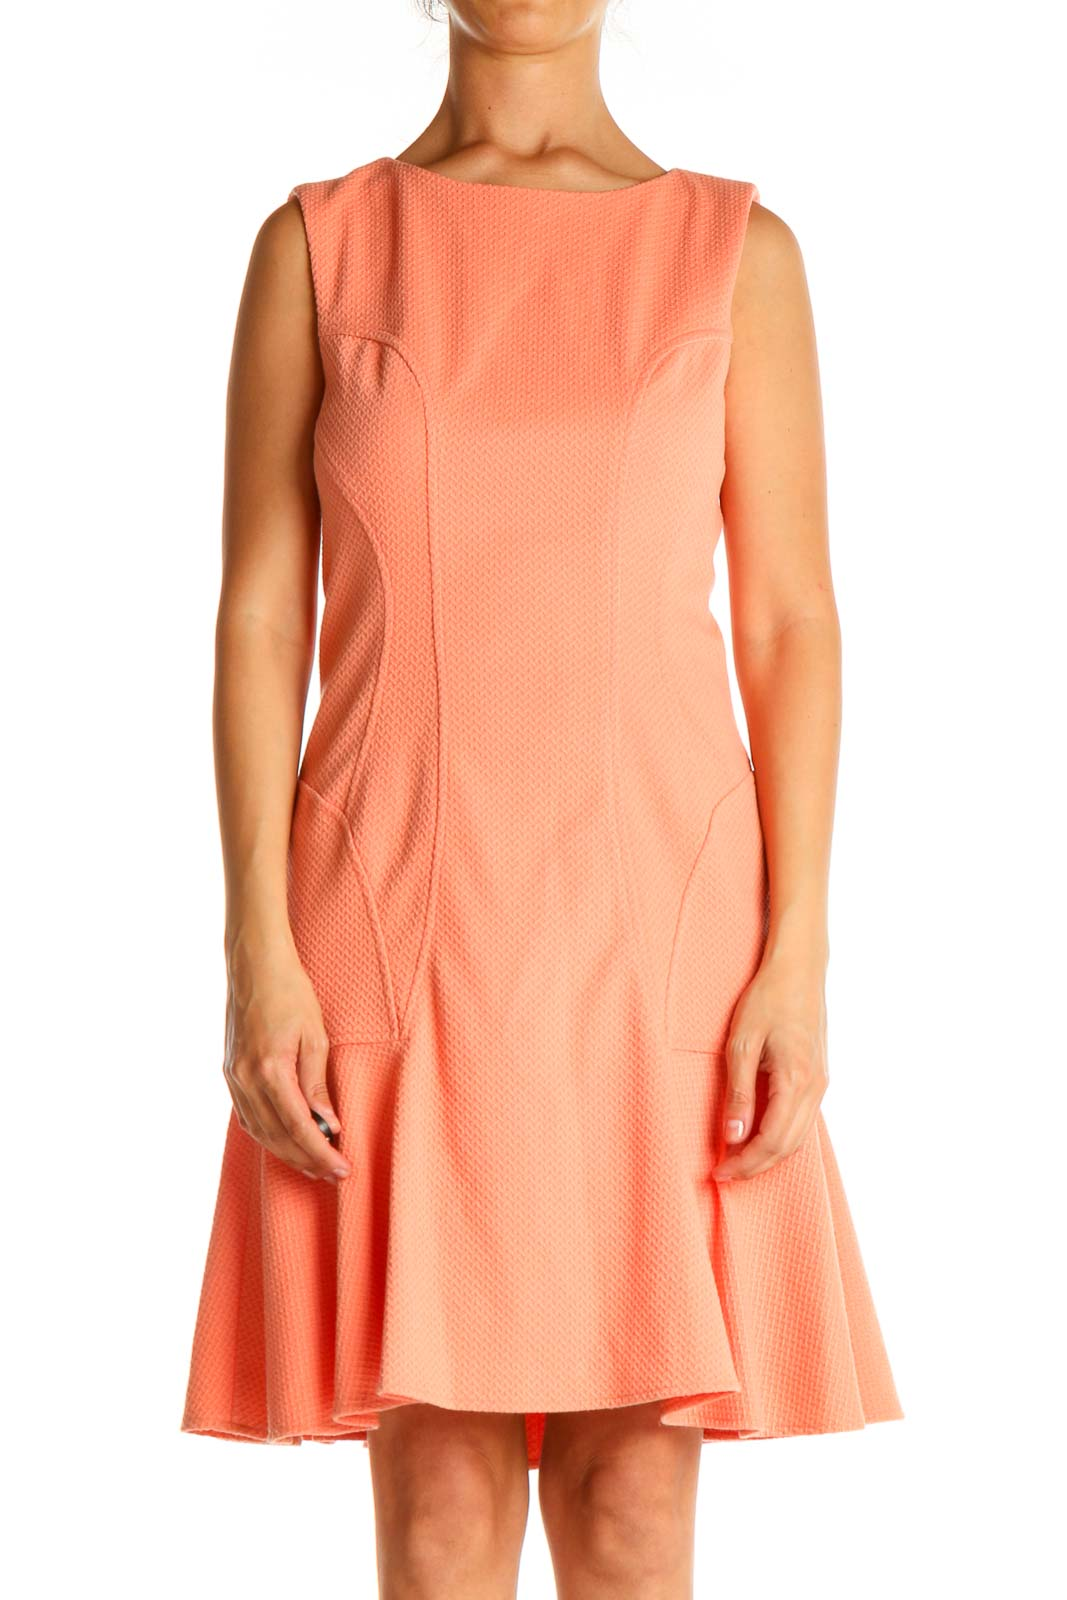 Pink Solid Chic Fit & Flare Dress Front